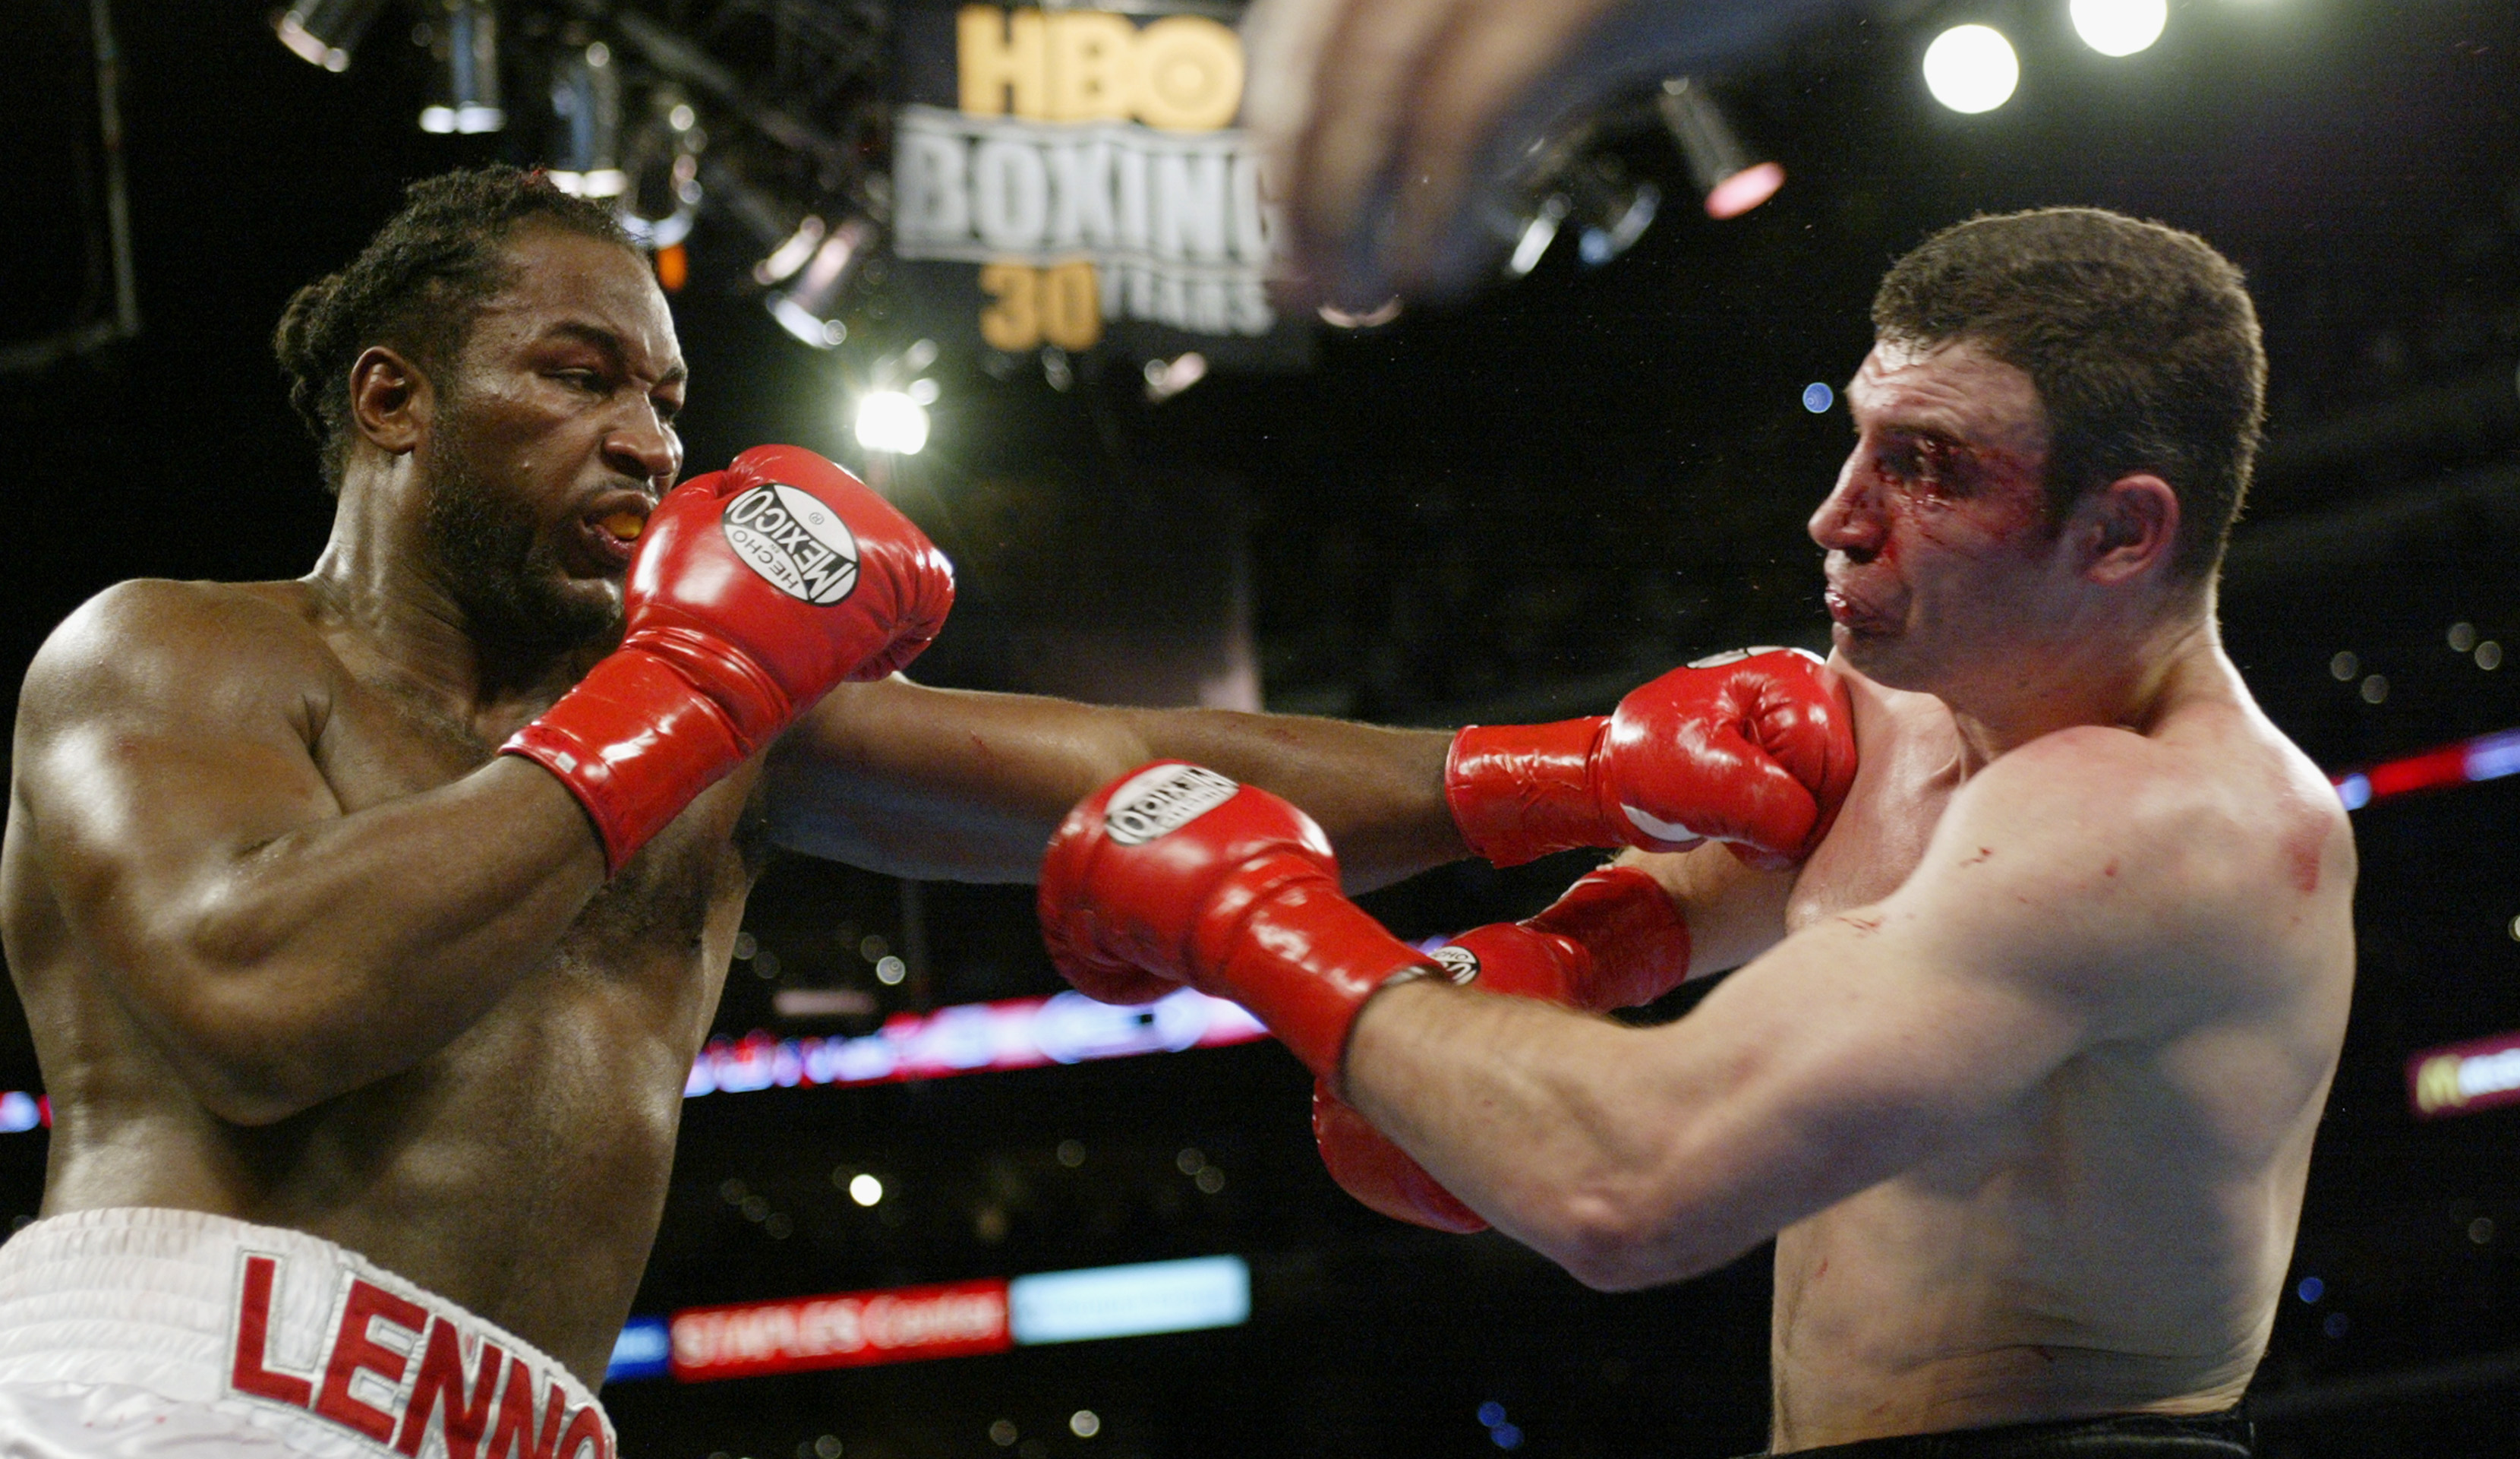 LOS ANGELES - JUNE 21:  Lennox Lewis (left) hits Vitali Klitschko (right) during their WBC and IBO World Heavyweight Championship bout at the Staples Center on June 21, 2003 in Los Angeles, California.  Lennox Lewis (41-2-1) was handed a sixth-round techn